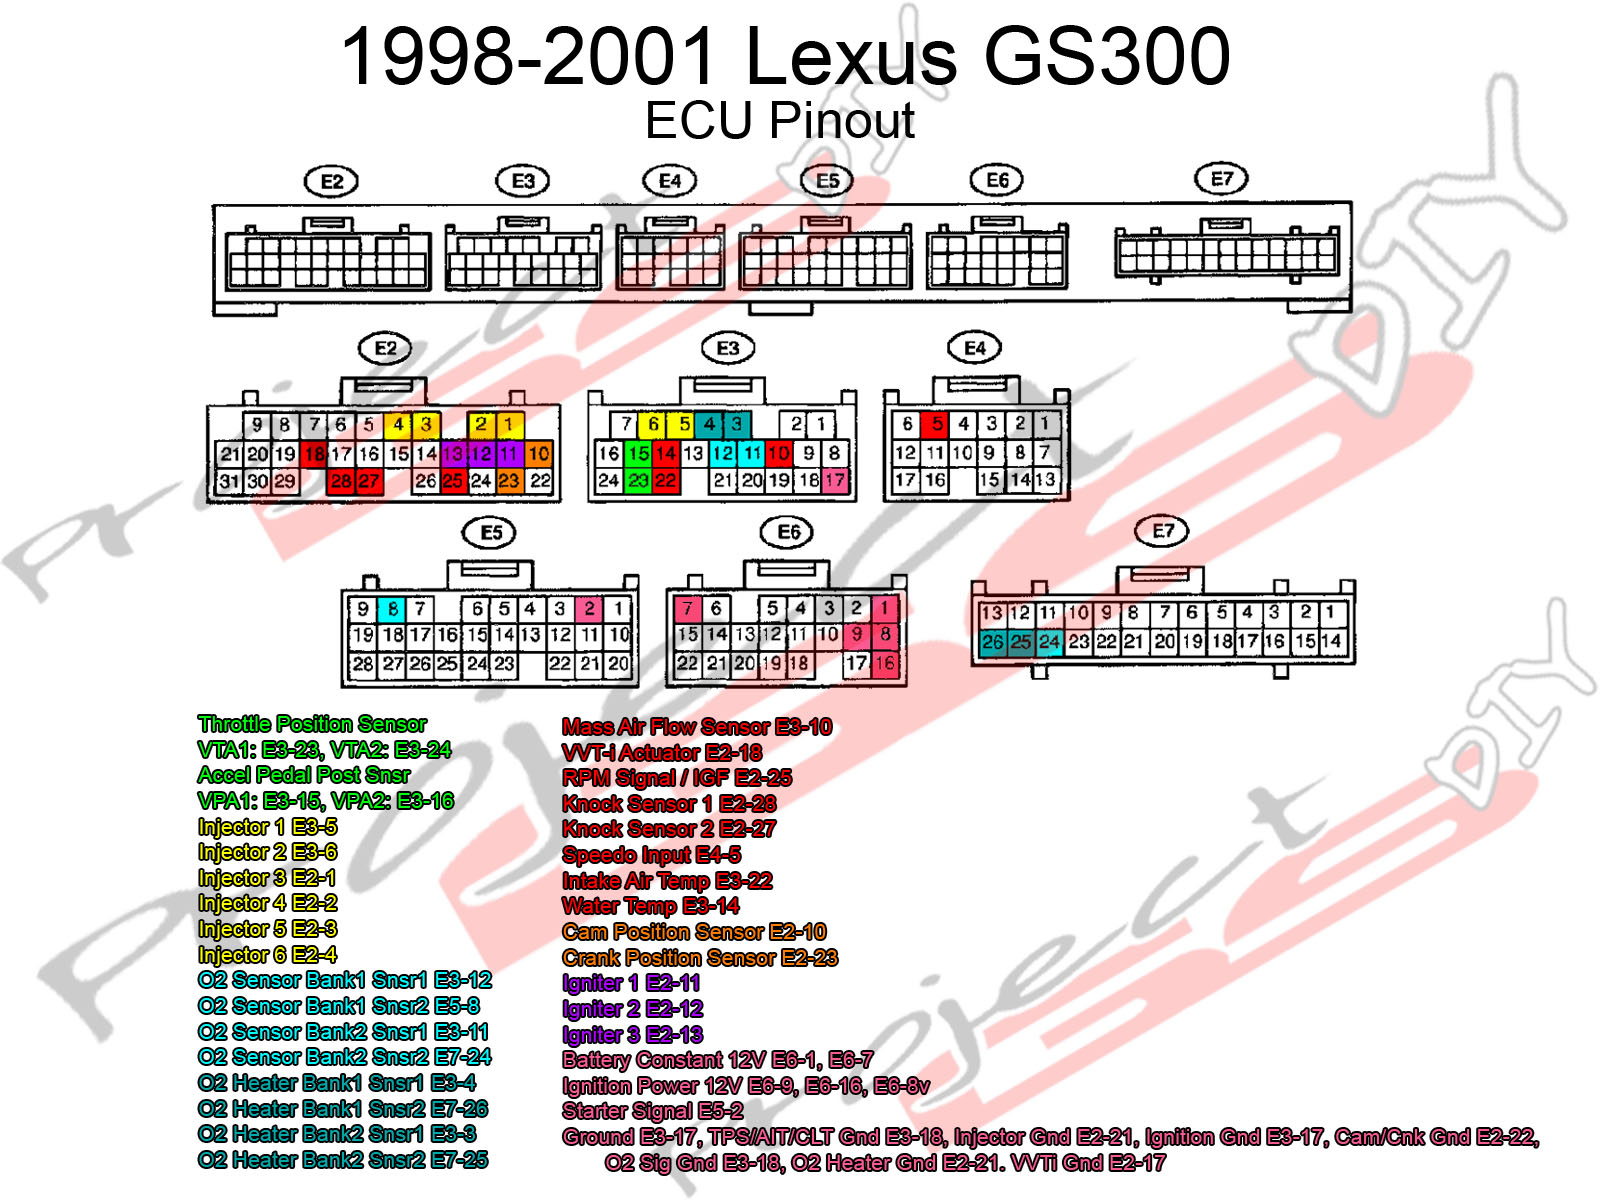 WRG-4671] 1993 Lexus Ls400 Wiring Diagram Radio on mako plumbing diagram, mako wheels, mako parts,